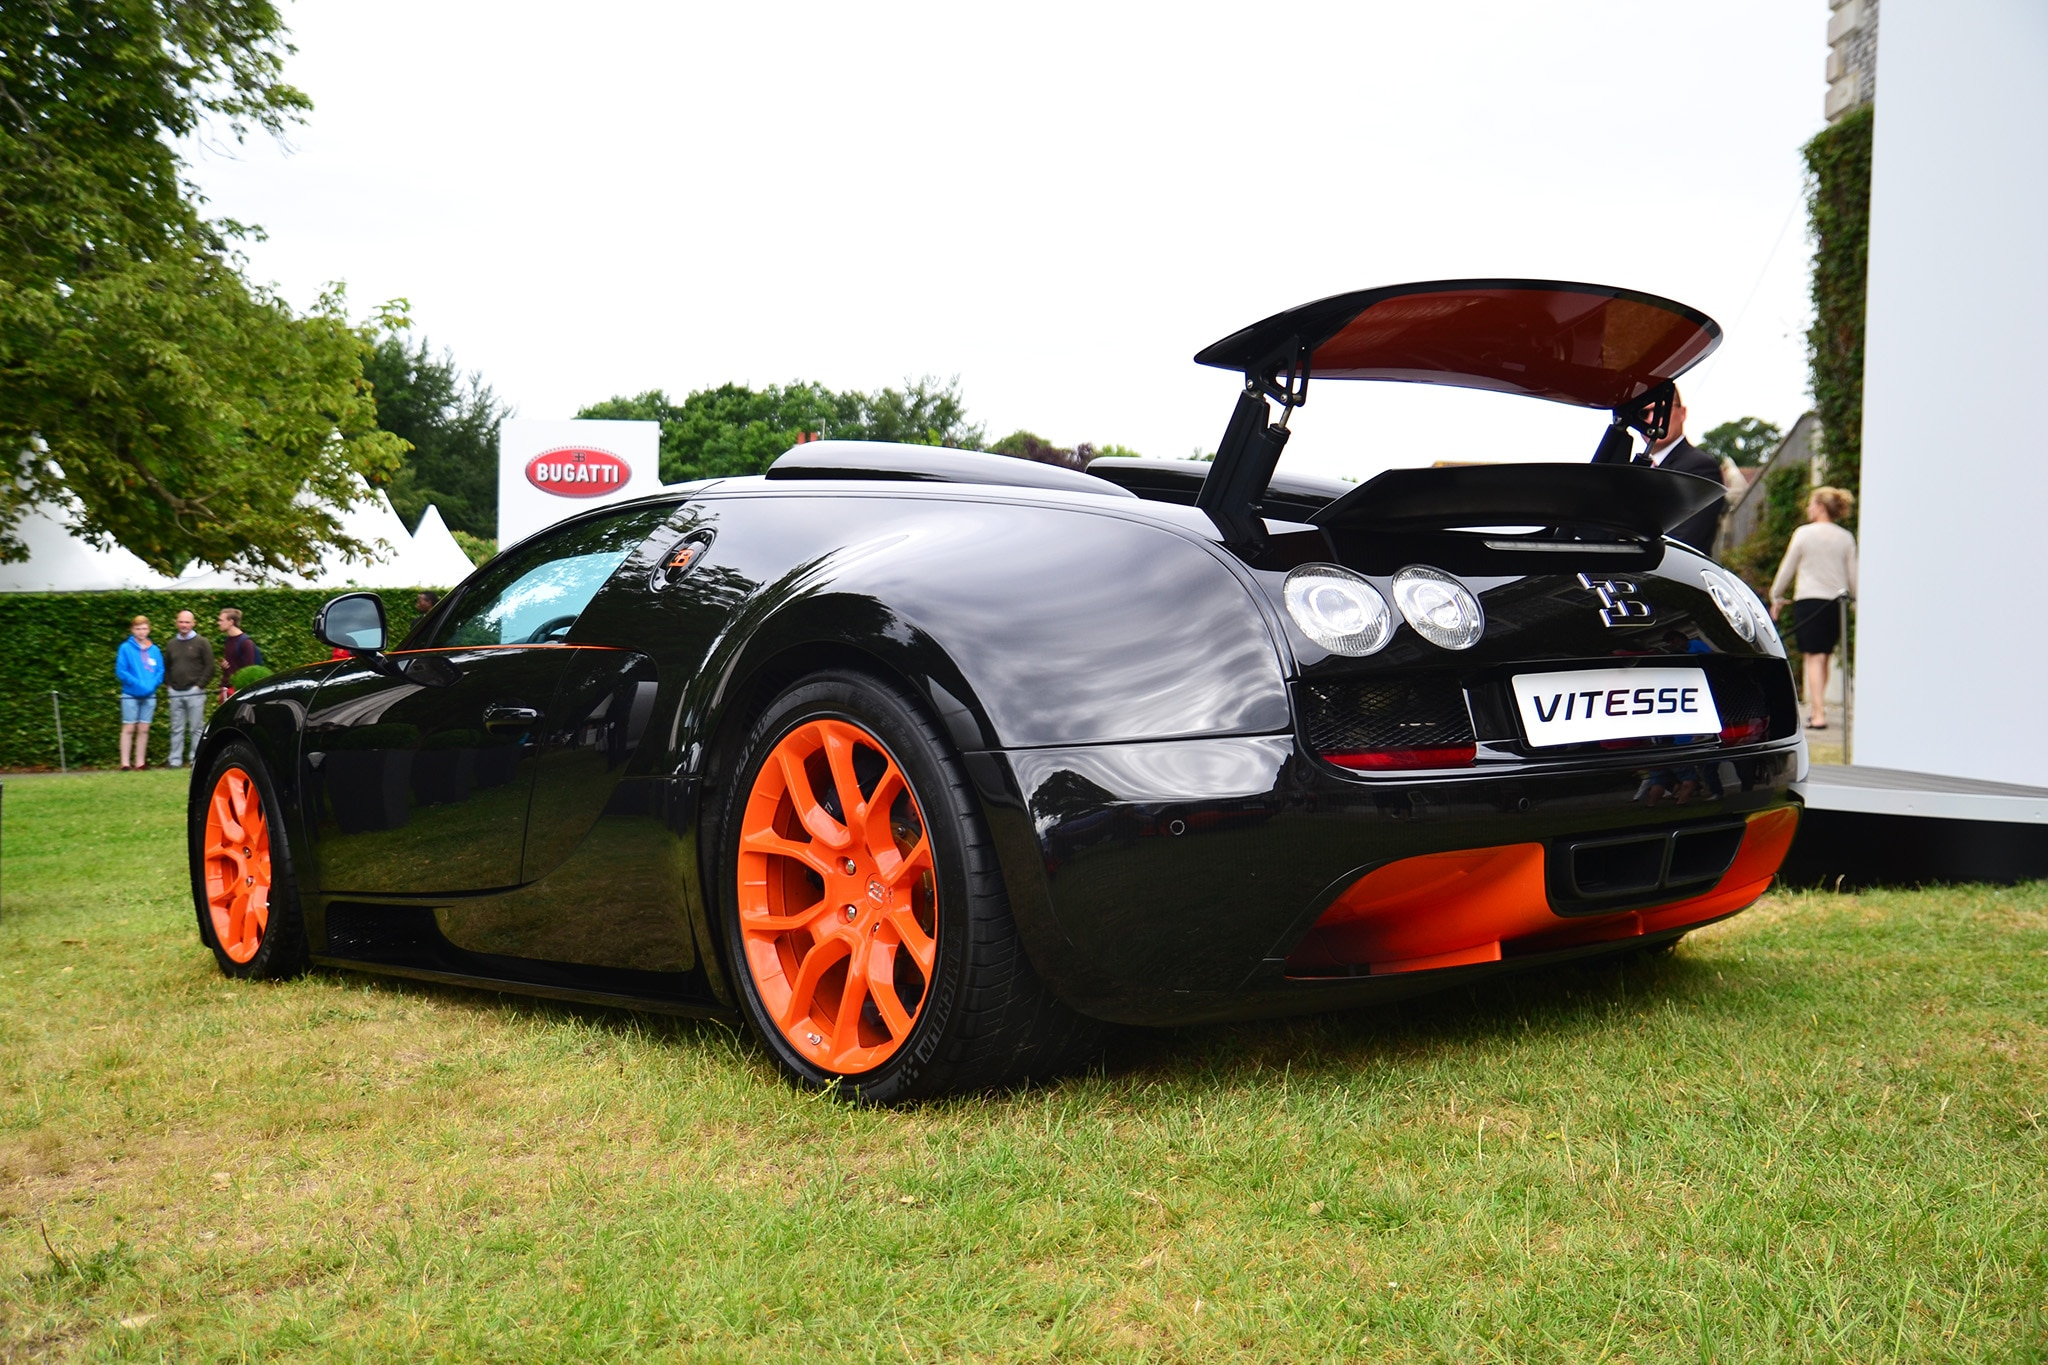 Bugatti-Veyron-Grand-Sport-Vitesse-Goodwood-Rear-Three-Quarters Astounding Bugatti Veyron Grand Sport Vitesse Roof Cars Trend